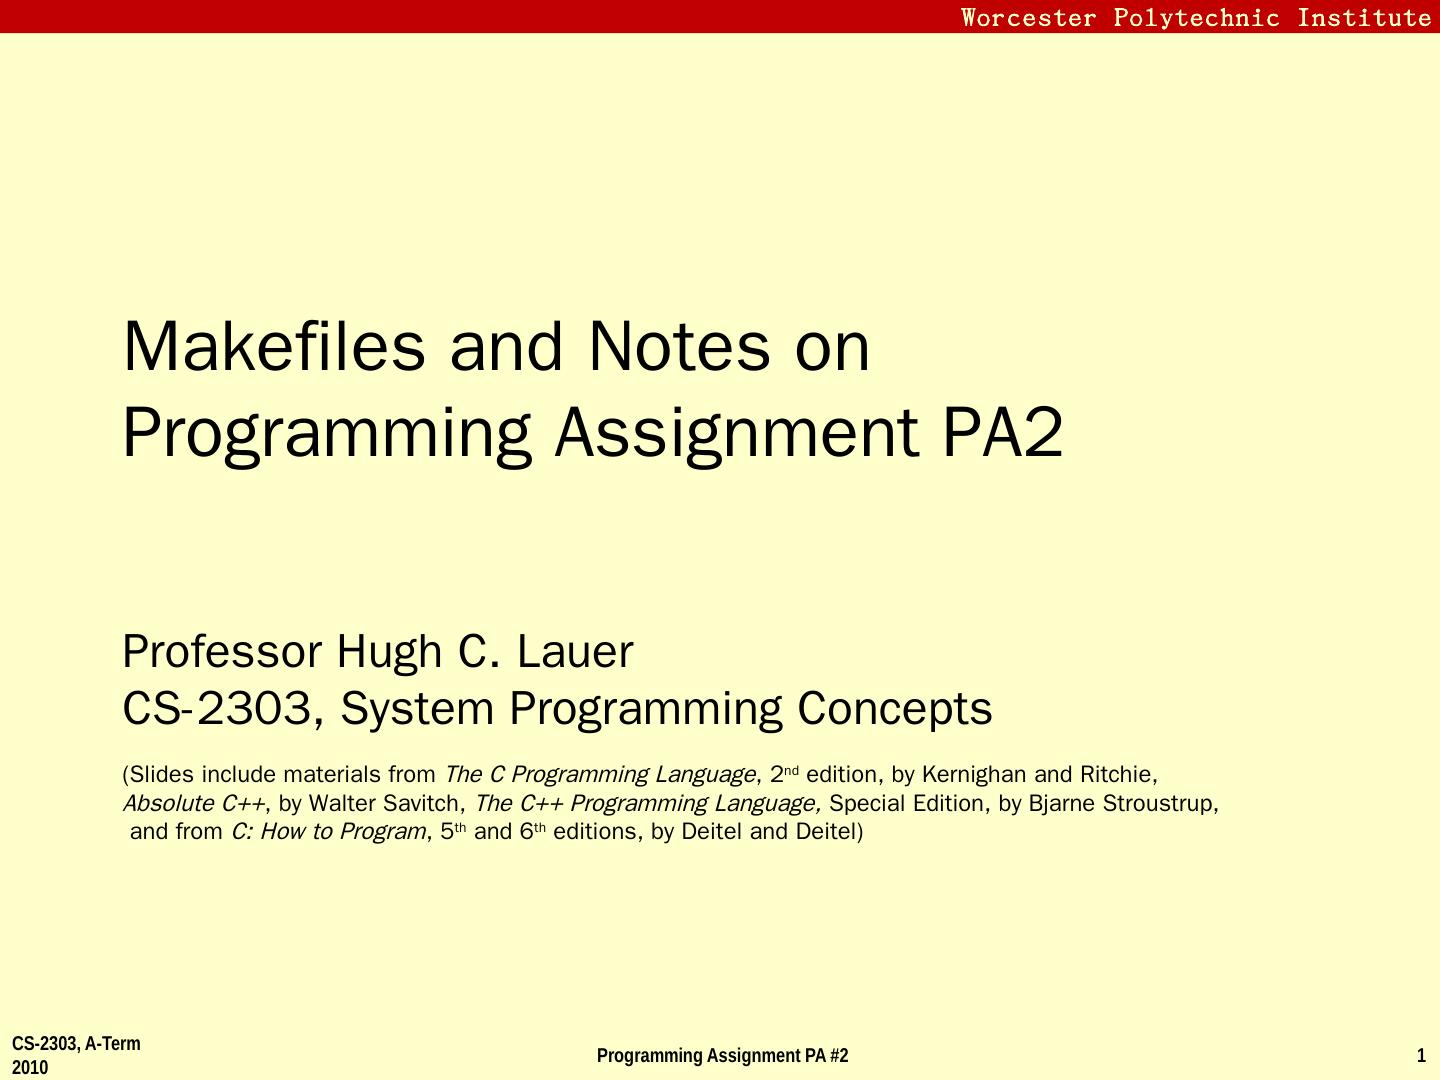 Makefiles and Notes on Programming Assignment PA2 - Worcester